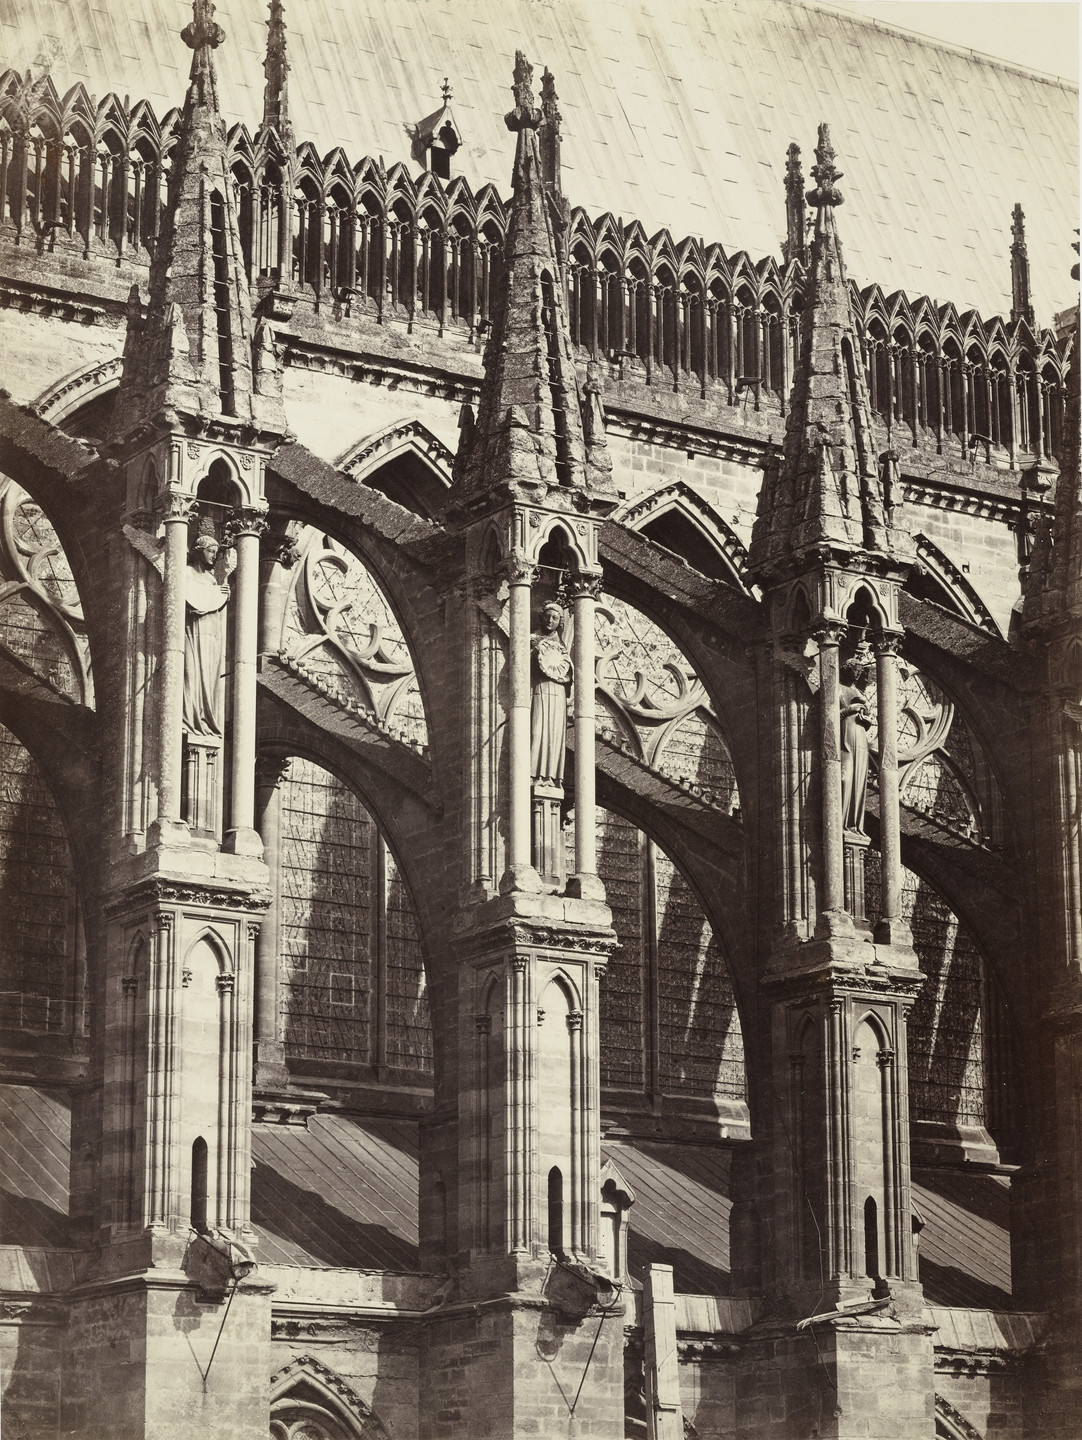 Louis-Auguste Bisson, Auguste-Rosalie Bisson. Reims Cathedral (buttresses of the nave). c. 1855